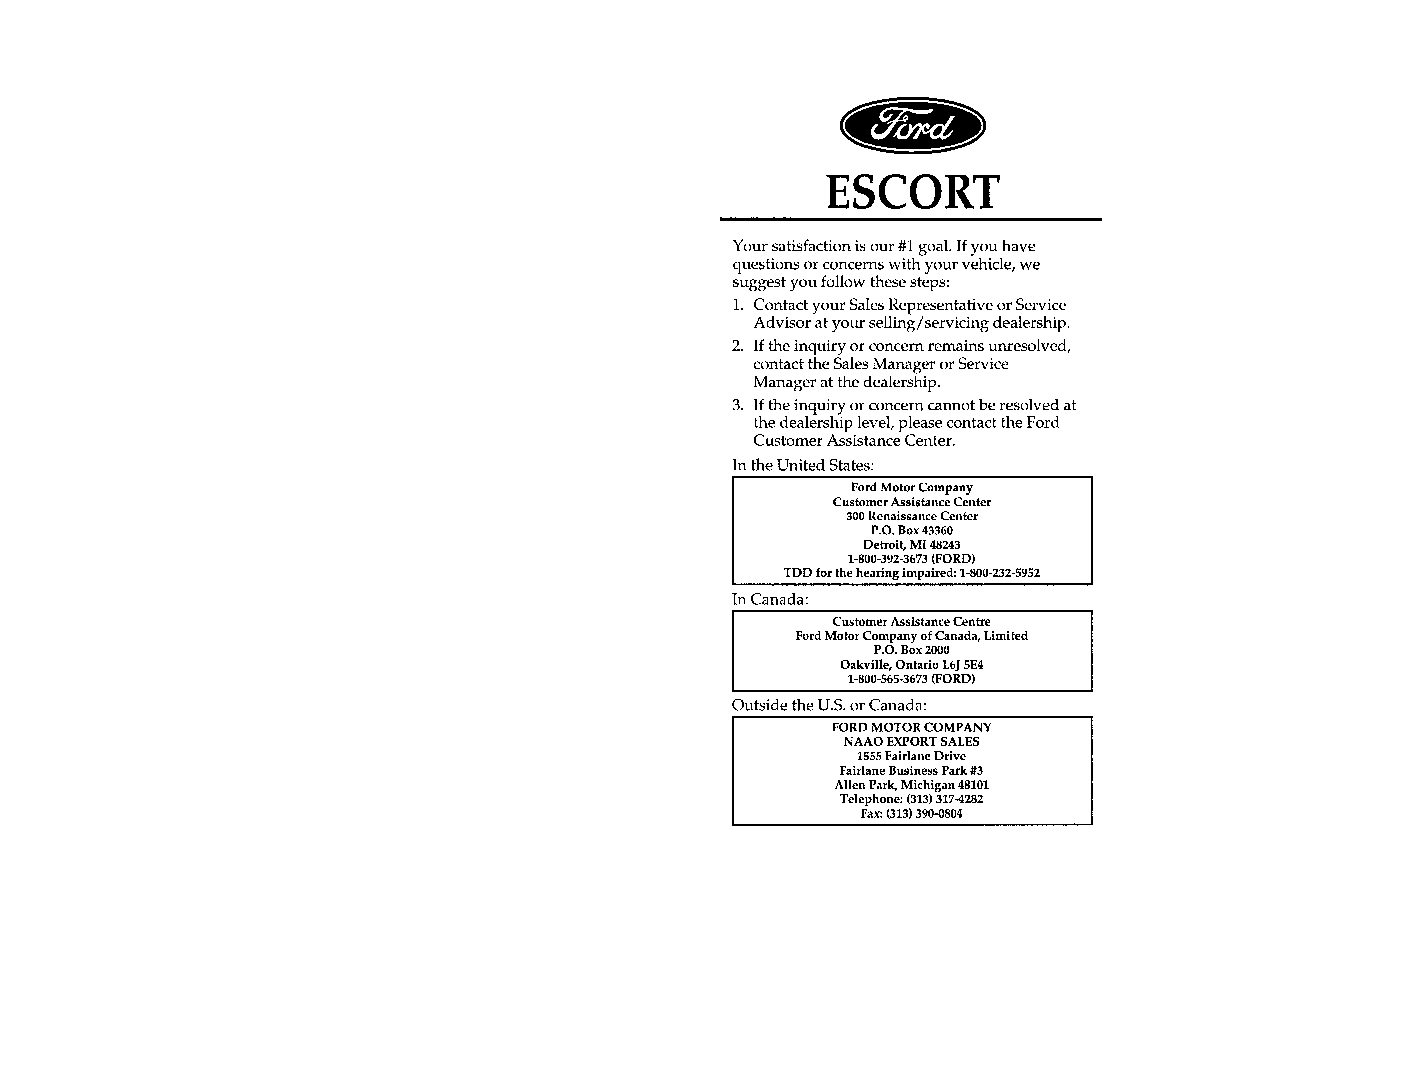 1996 Ford Escort Owner's Manual Image